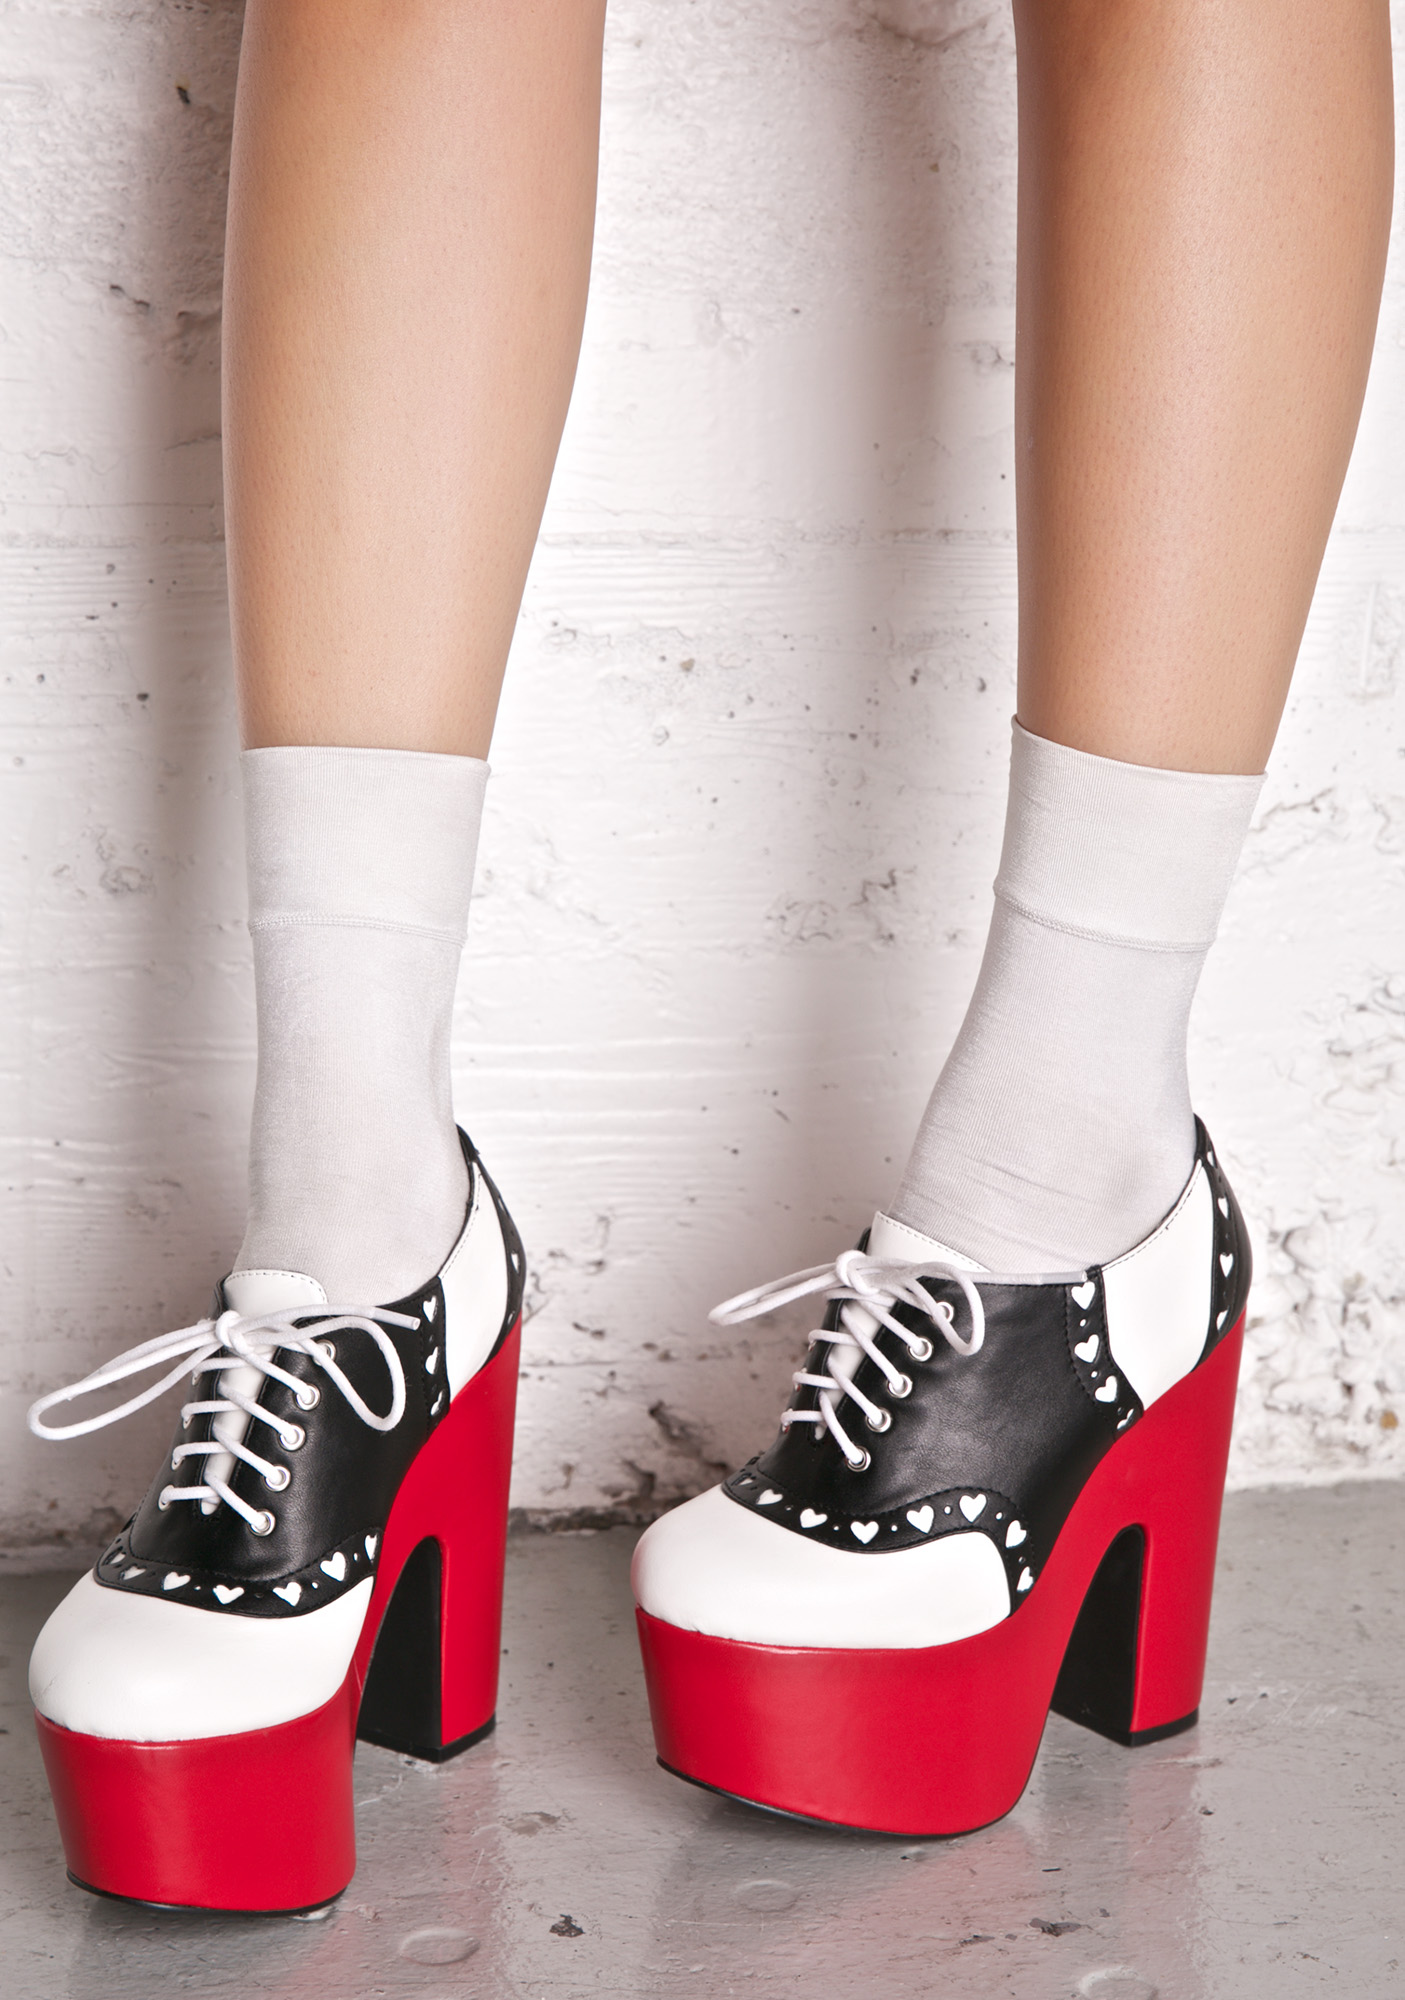 Red Black White Kawaii Oxford Platform Heels